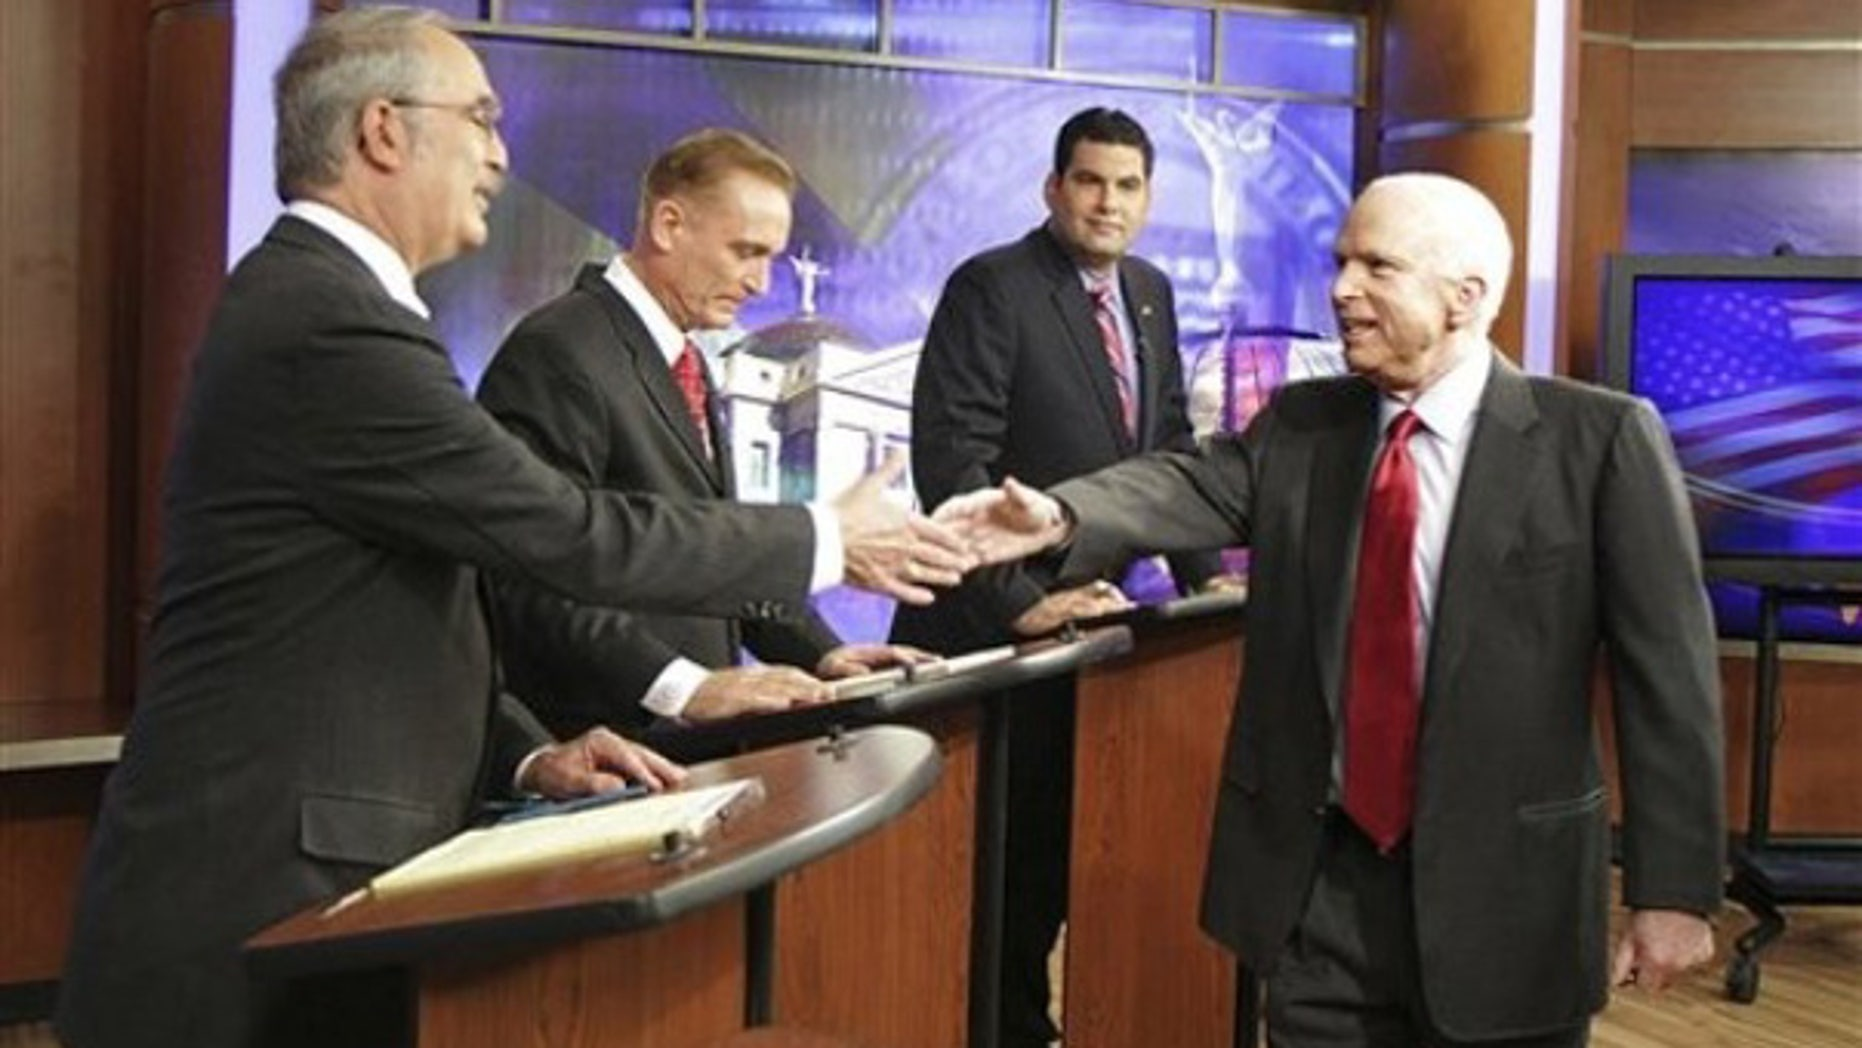 Sunday: U.S. Sen John McCain, R-Ariz., right, shakes hands with Libertarian U.S. Senate candidate David Nolan, left, after greeting Green Party candidate Jerry Joslyn and Democrat Rodney Glassman prior to a debate at KTVK television studios in Phoenix.